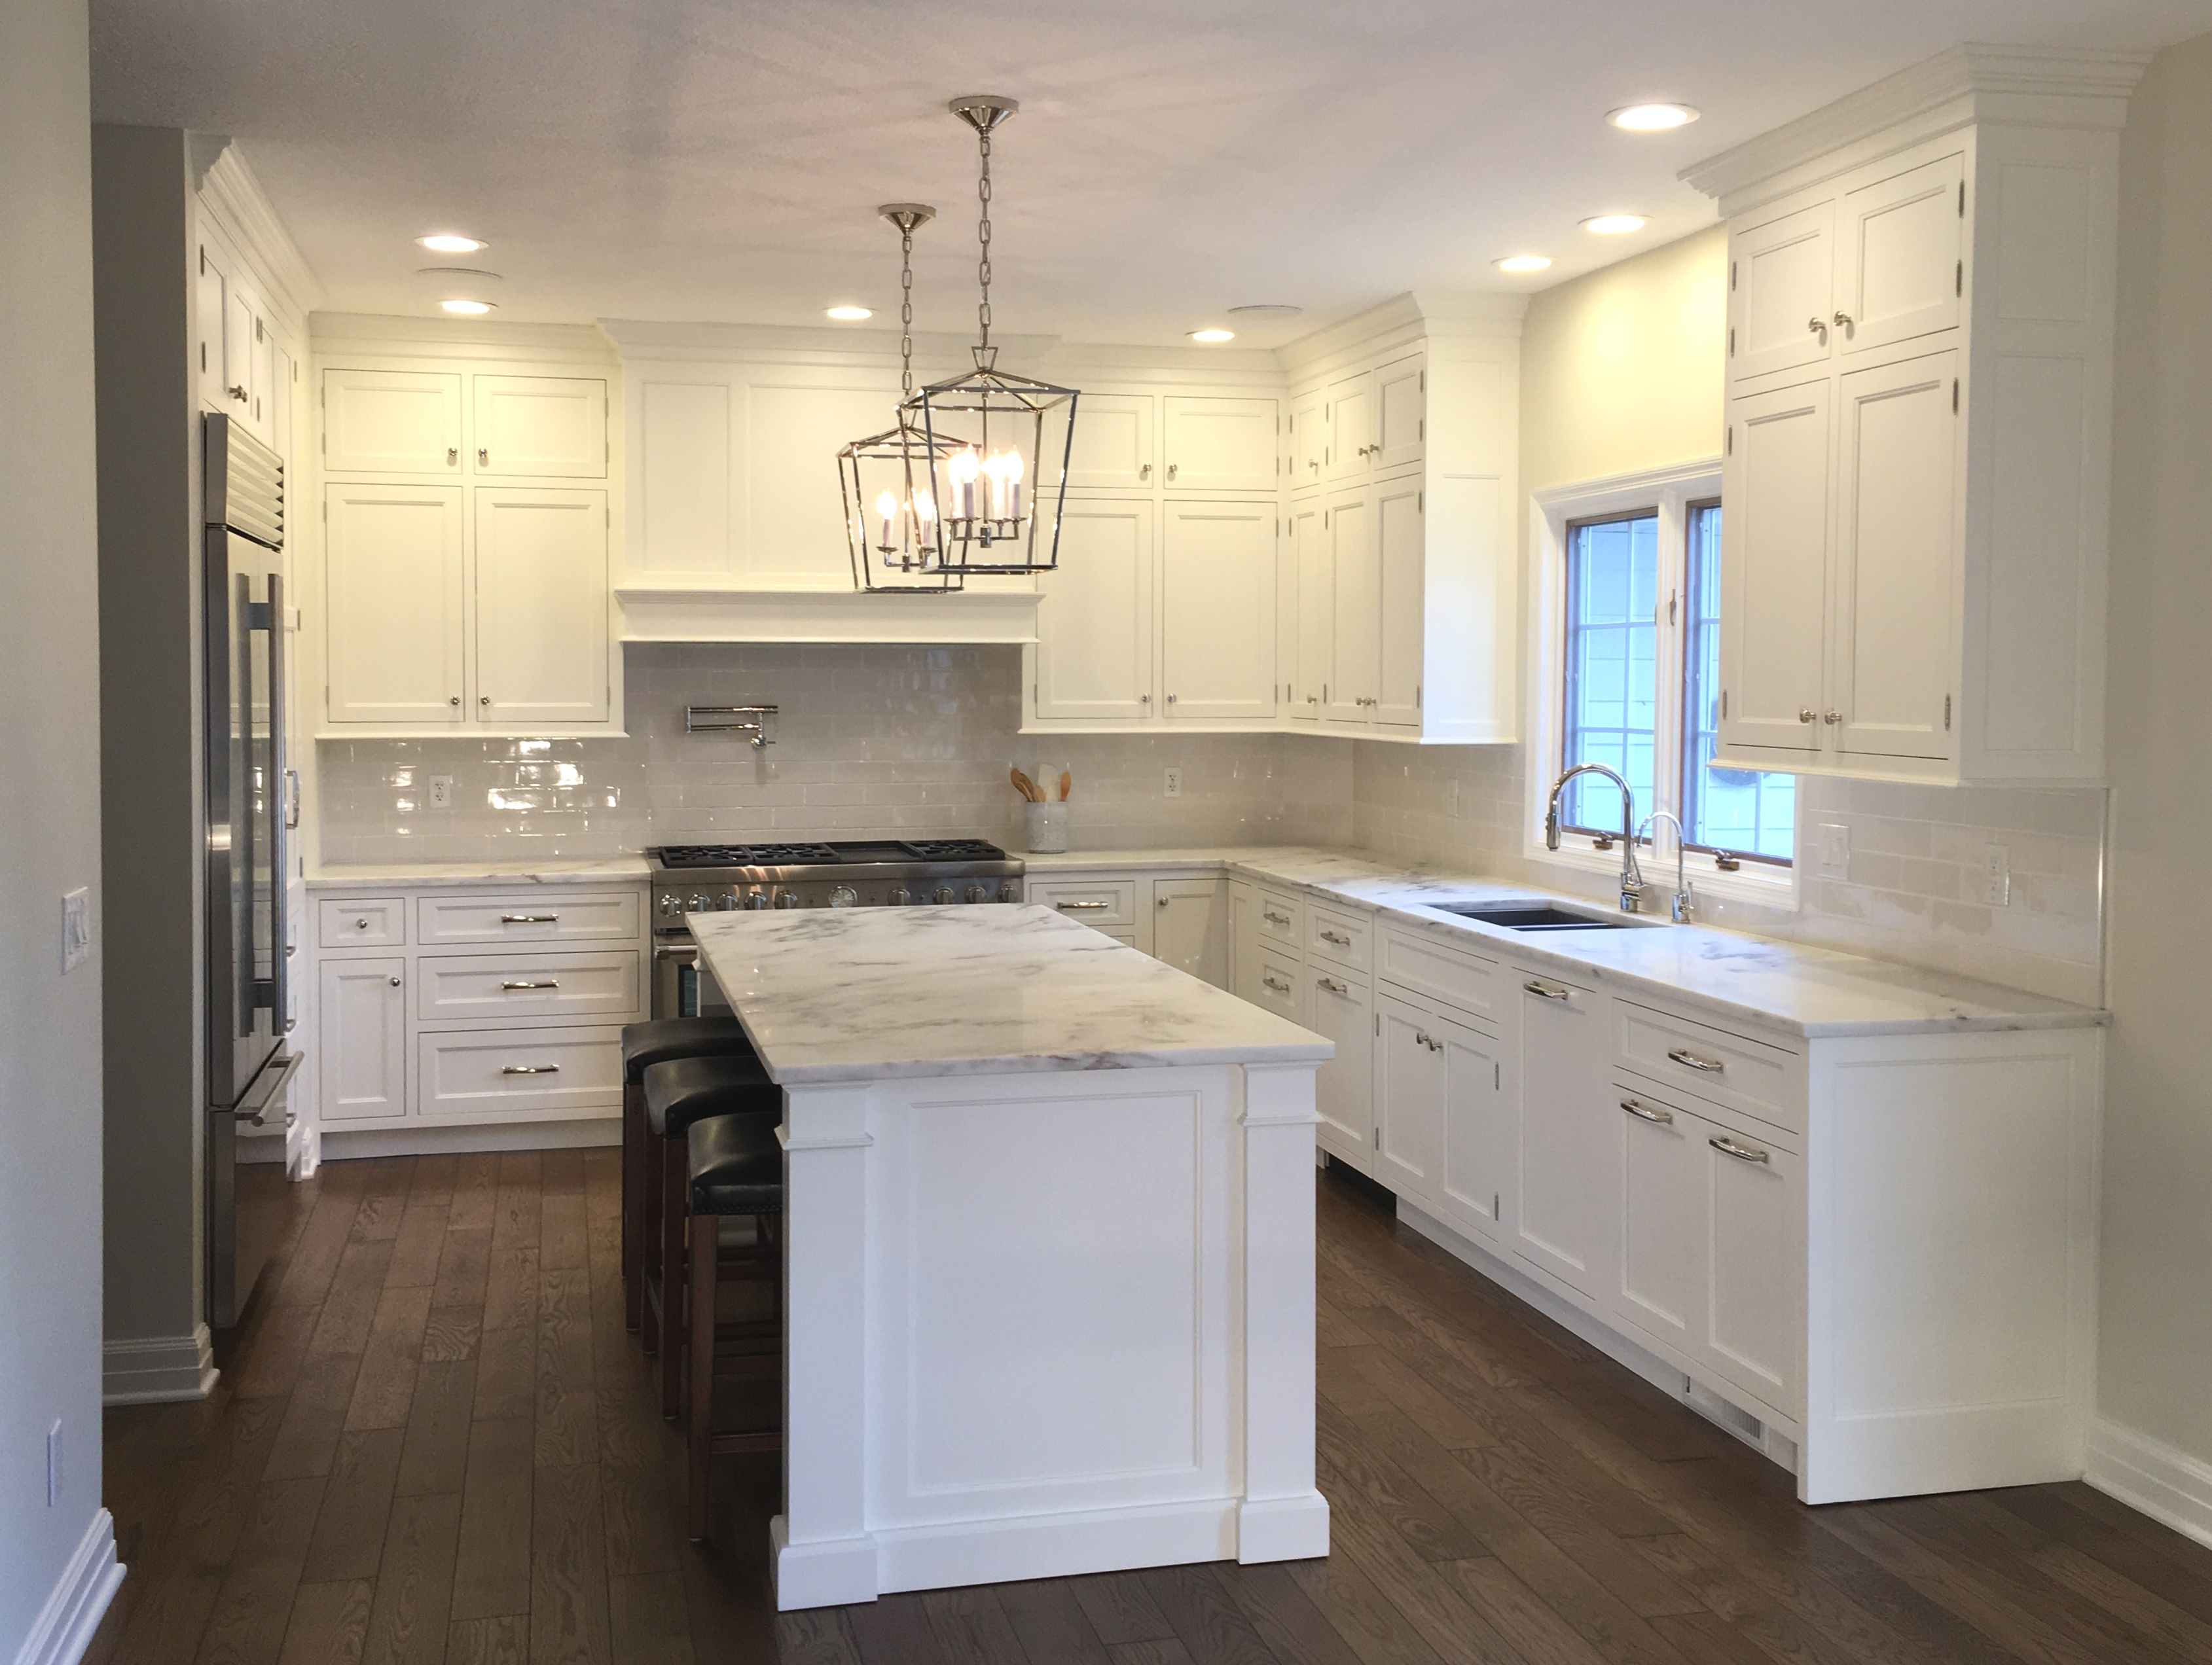 No. 1 Amish Cabinets in Peoria, IL - Cherrytree Kitchens